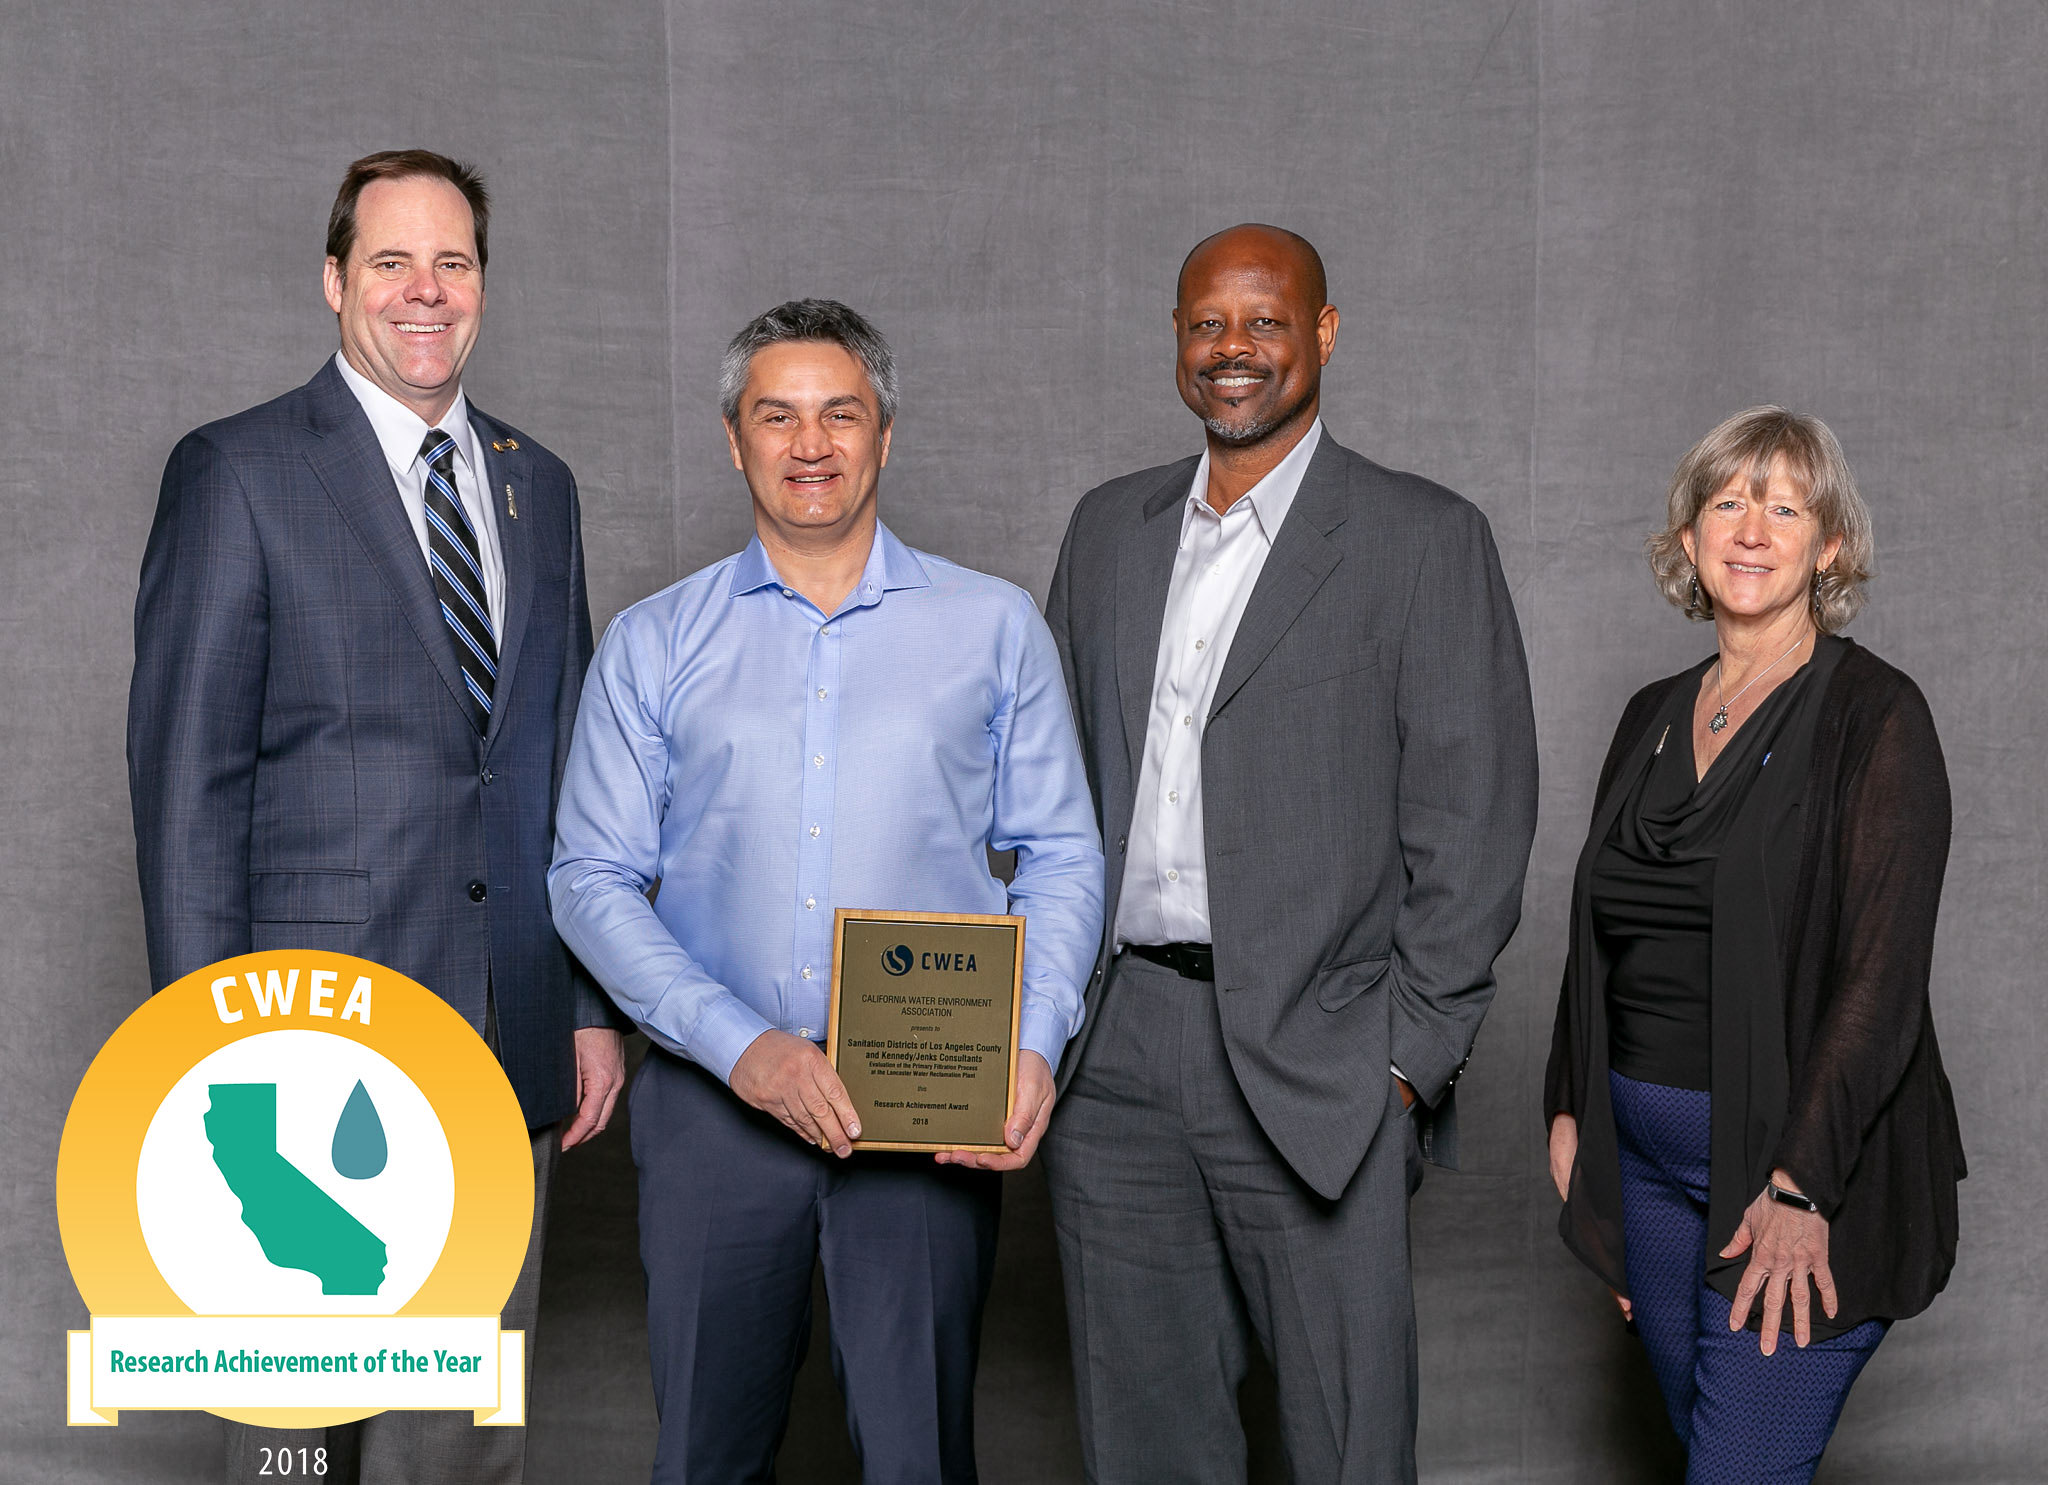 Research Achievement of the Year: Sanitation Districts of Los Angeles County & Kennedy/Jenks Consultants